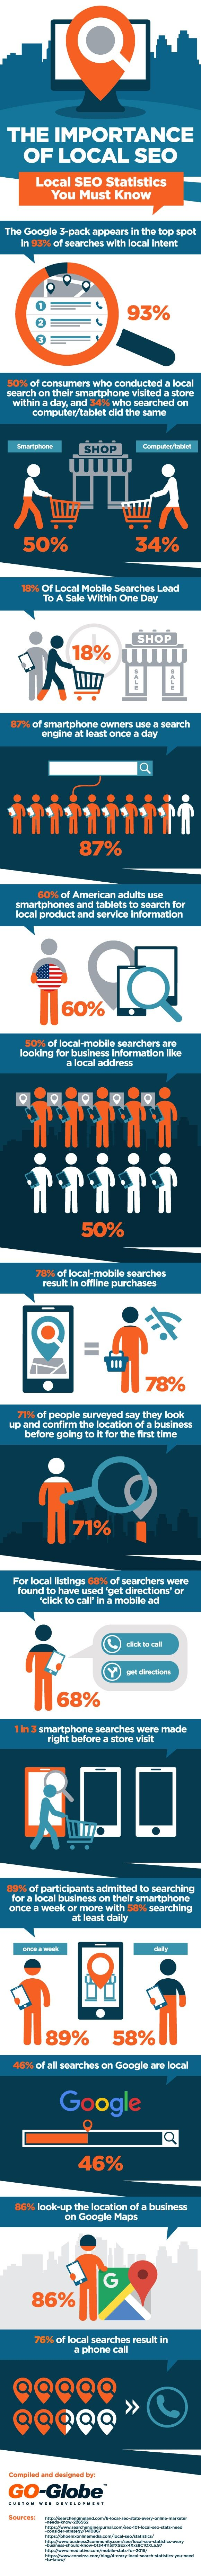 Check out some statistics that prove just how important local SEO is for gaining potential consumers: